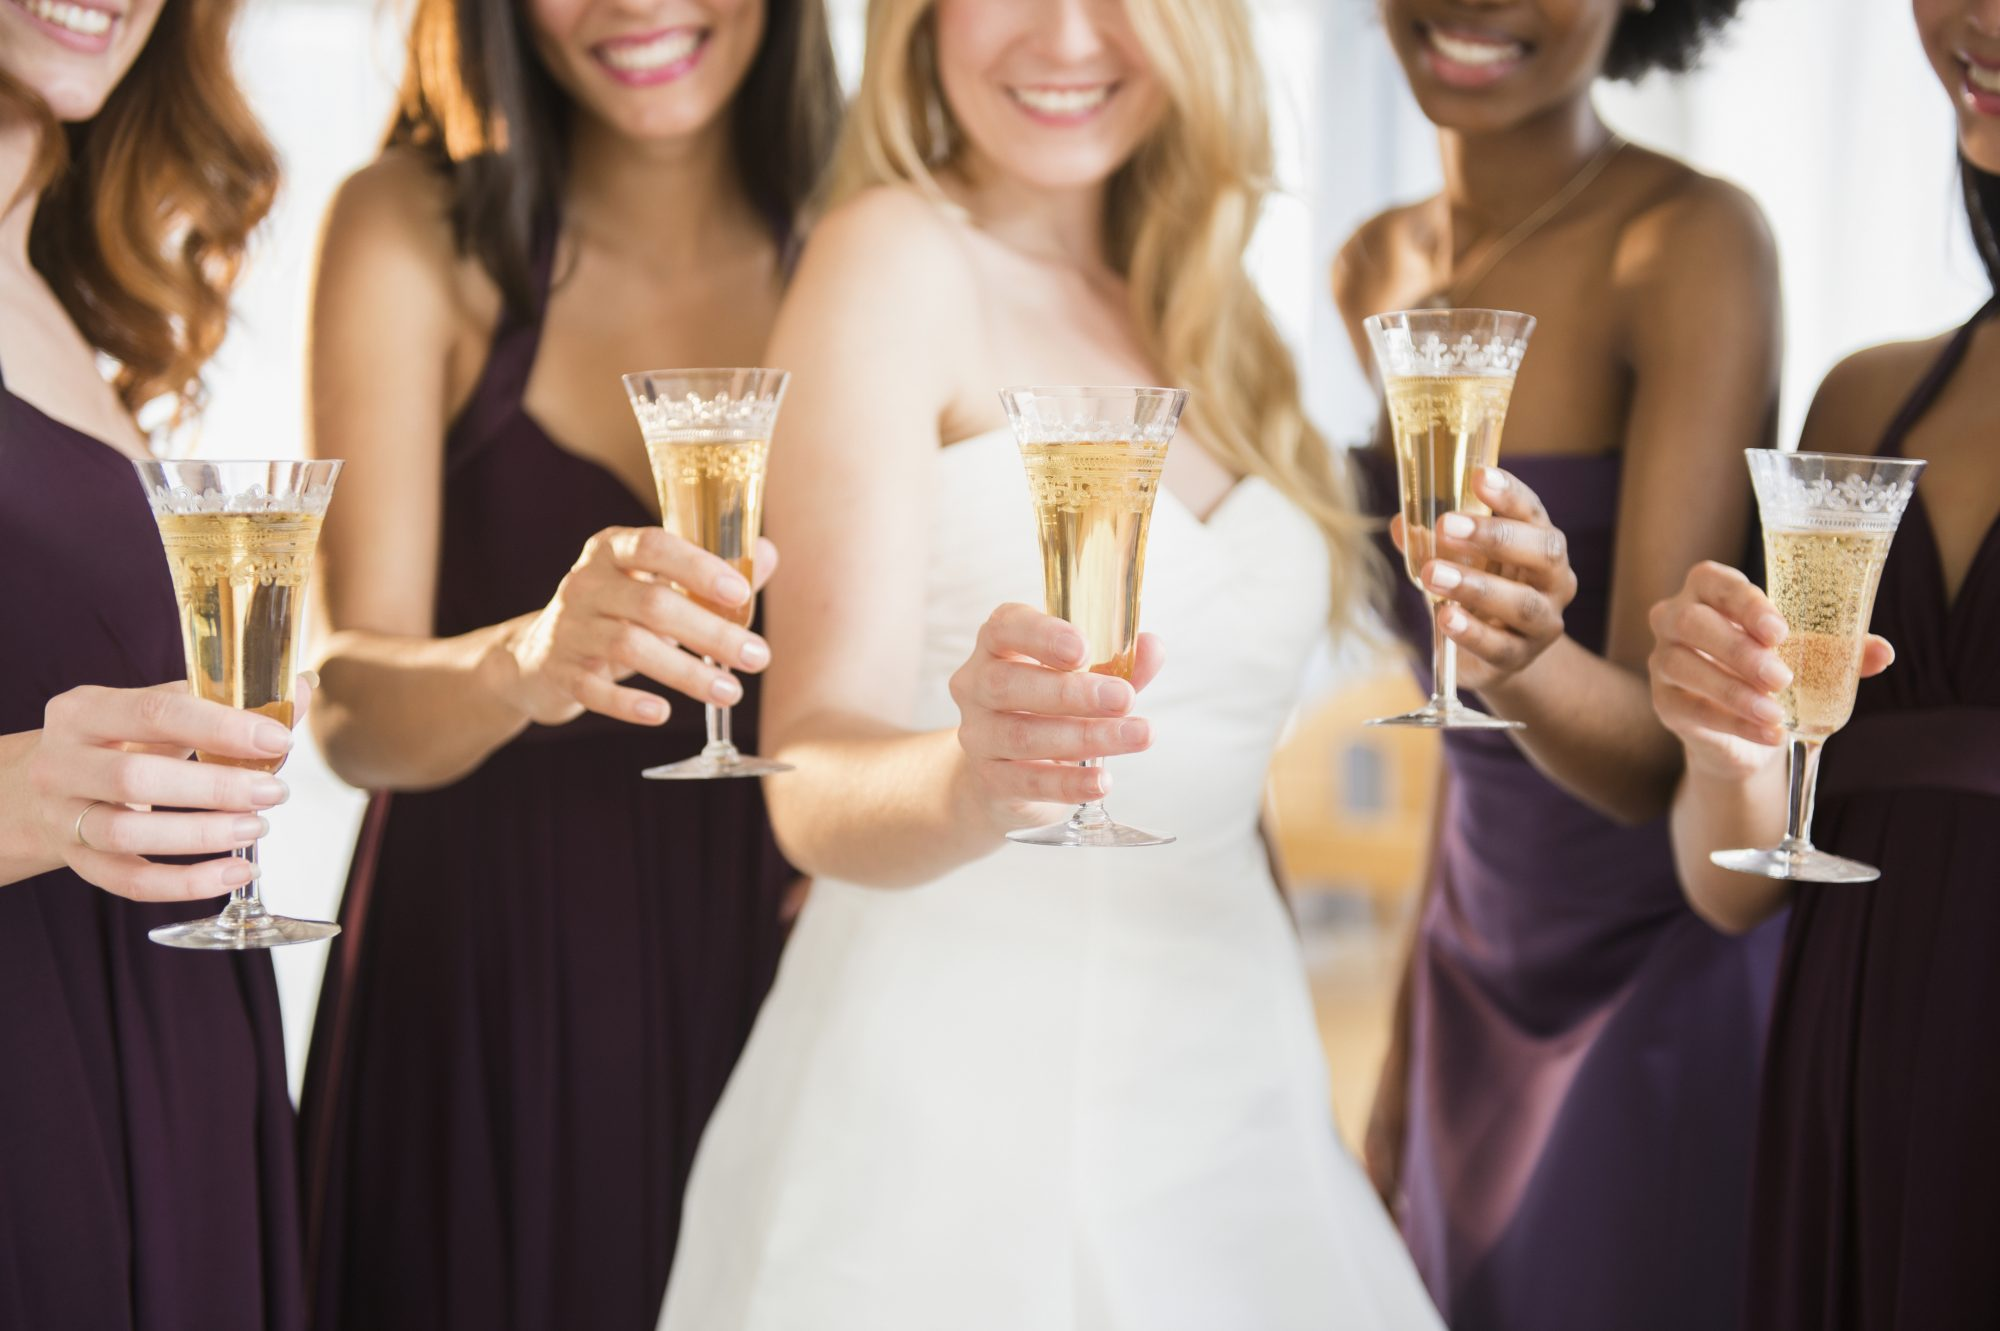 How to let your bridesmaids choose their own dresses southern living 4 ways to let your bridesmaids choose their own dresses and still get the look you want ombrellifo Gallery